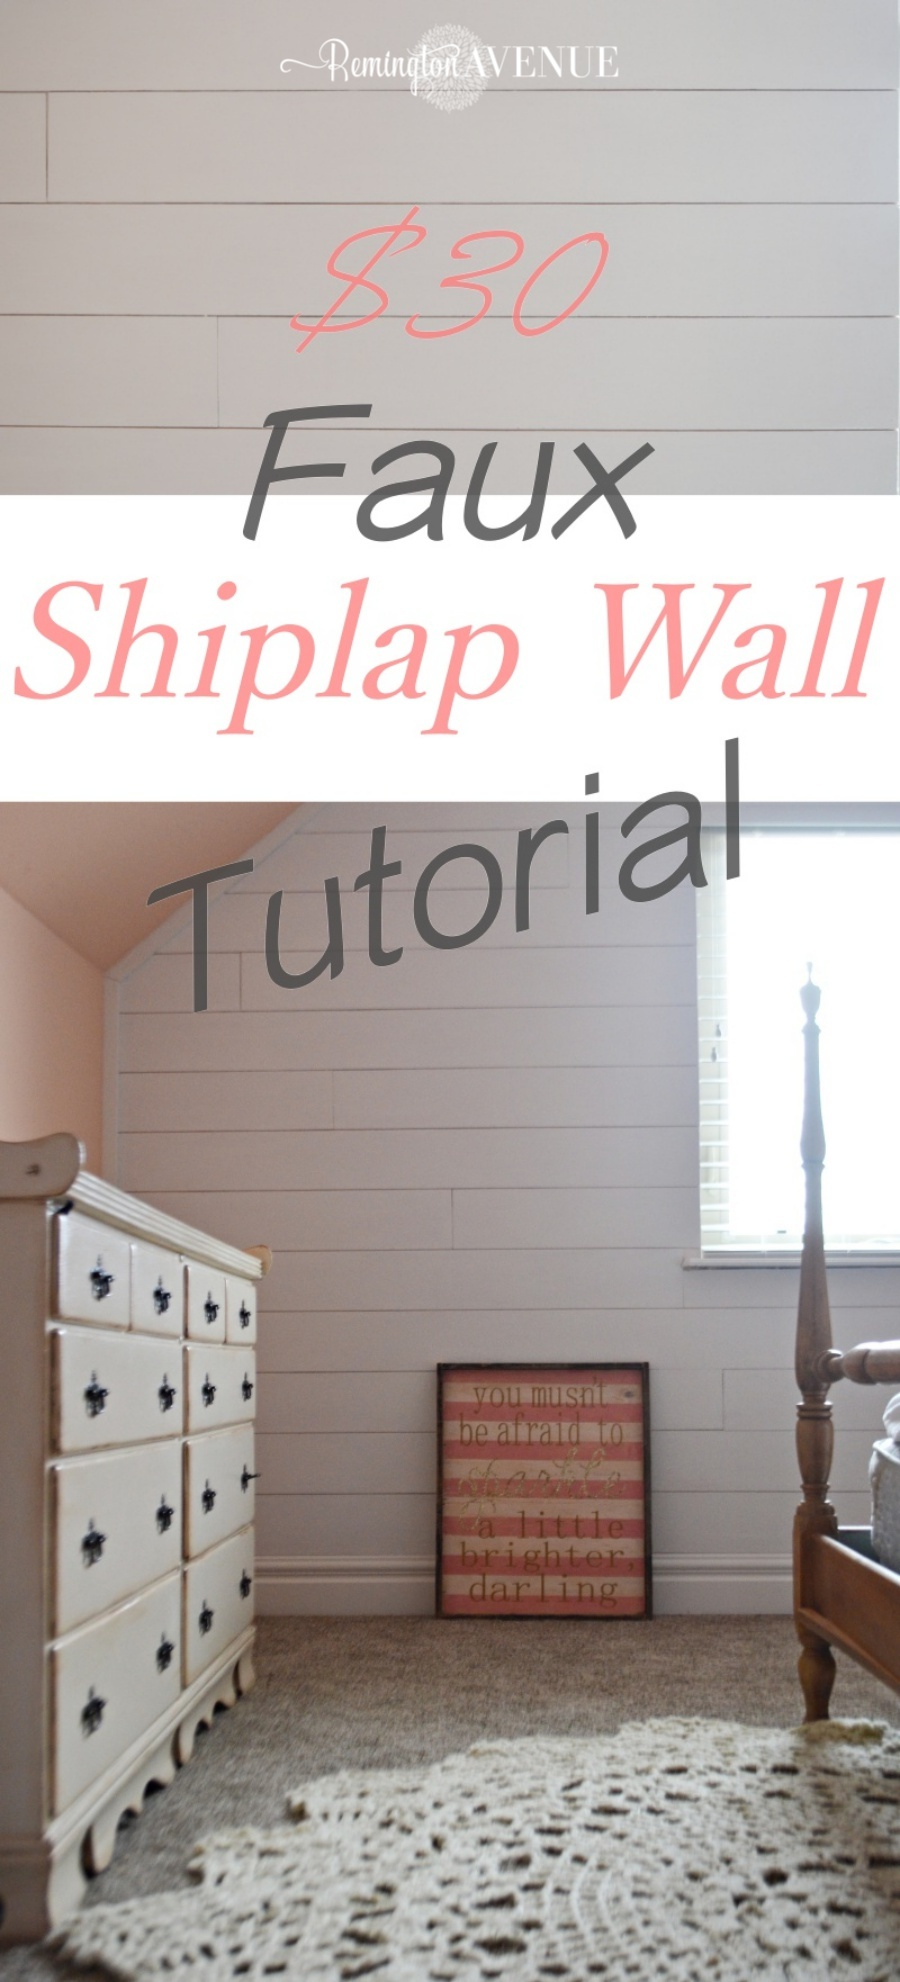 faux shiplap wall tutorial